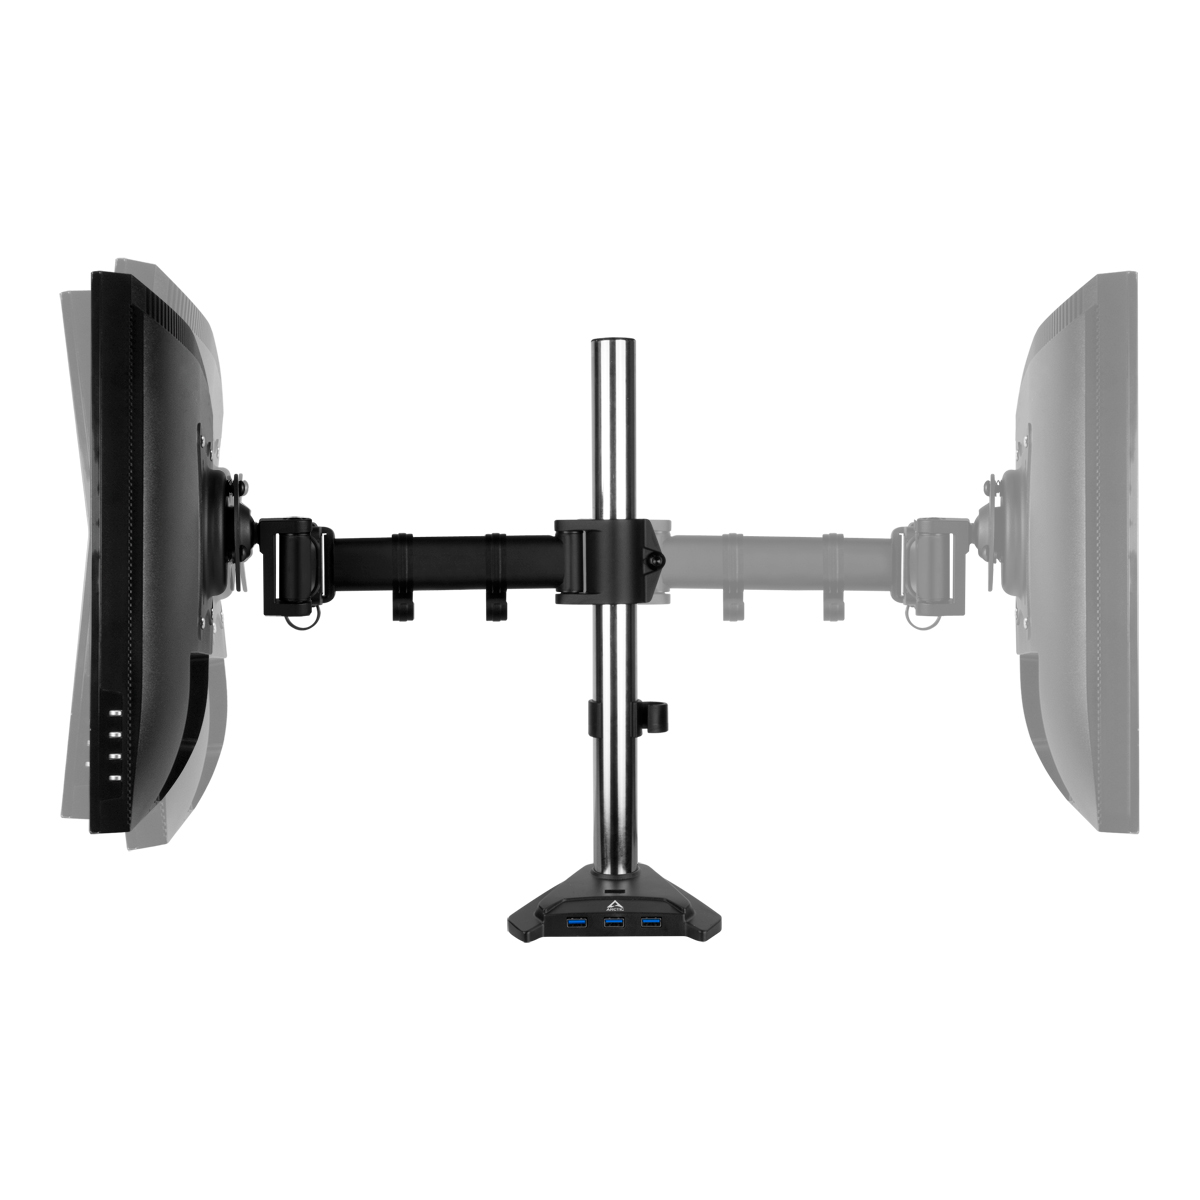 Desk Mount Monitor Arm with SuperSpeed USB Hub ARCTIC Z1 Pro (Gen 3) Tiltable